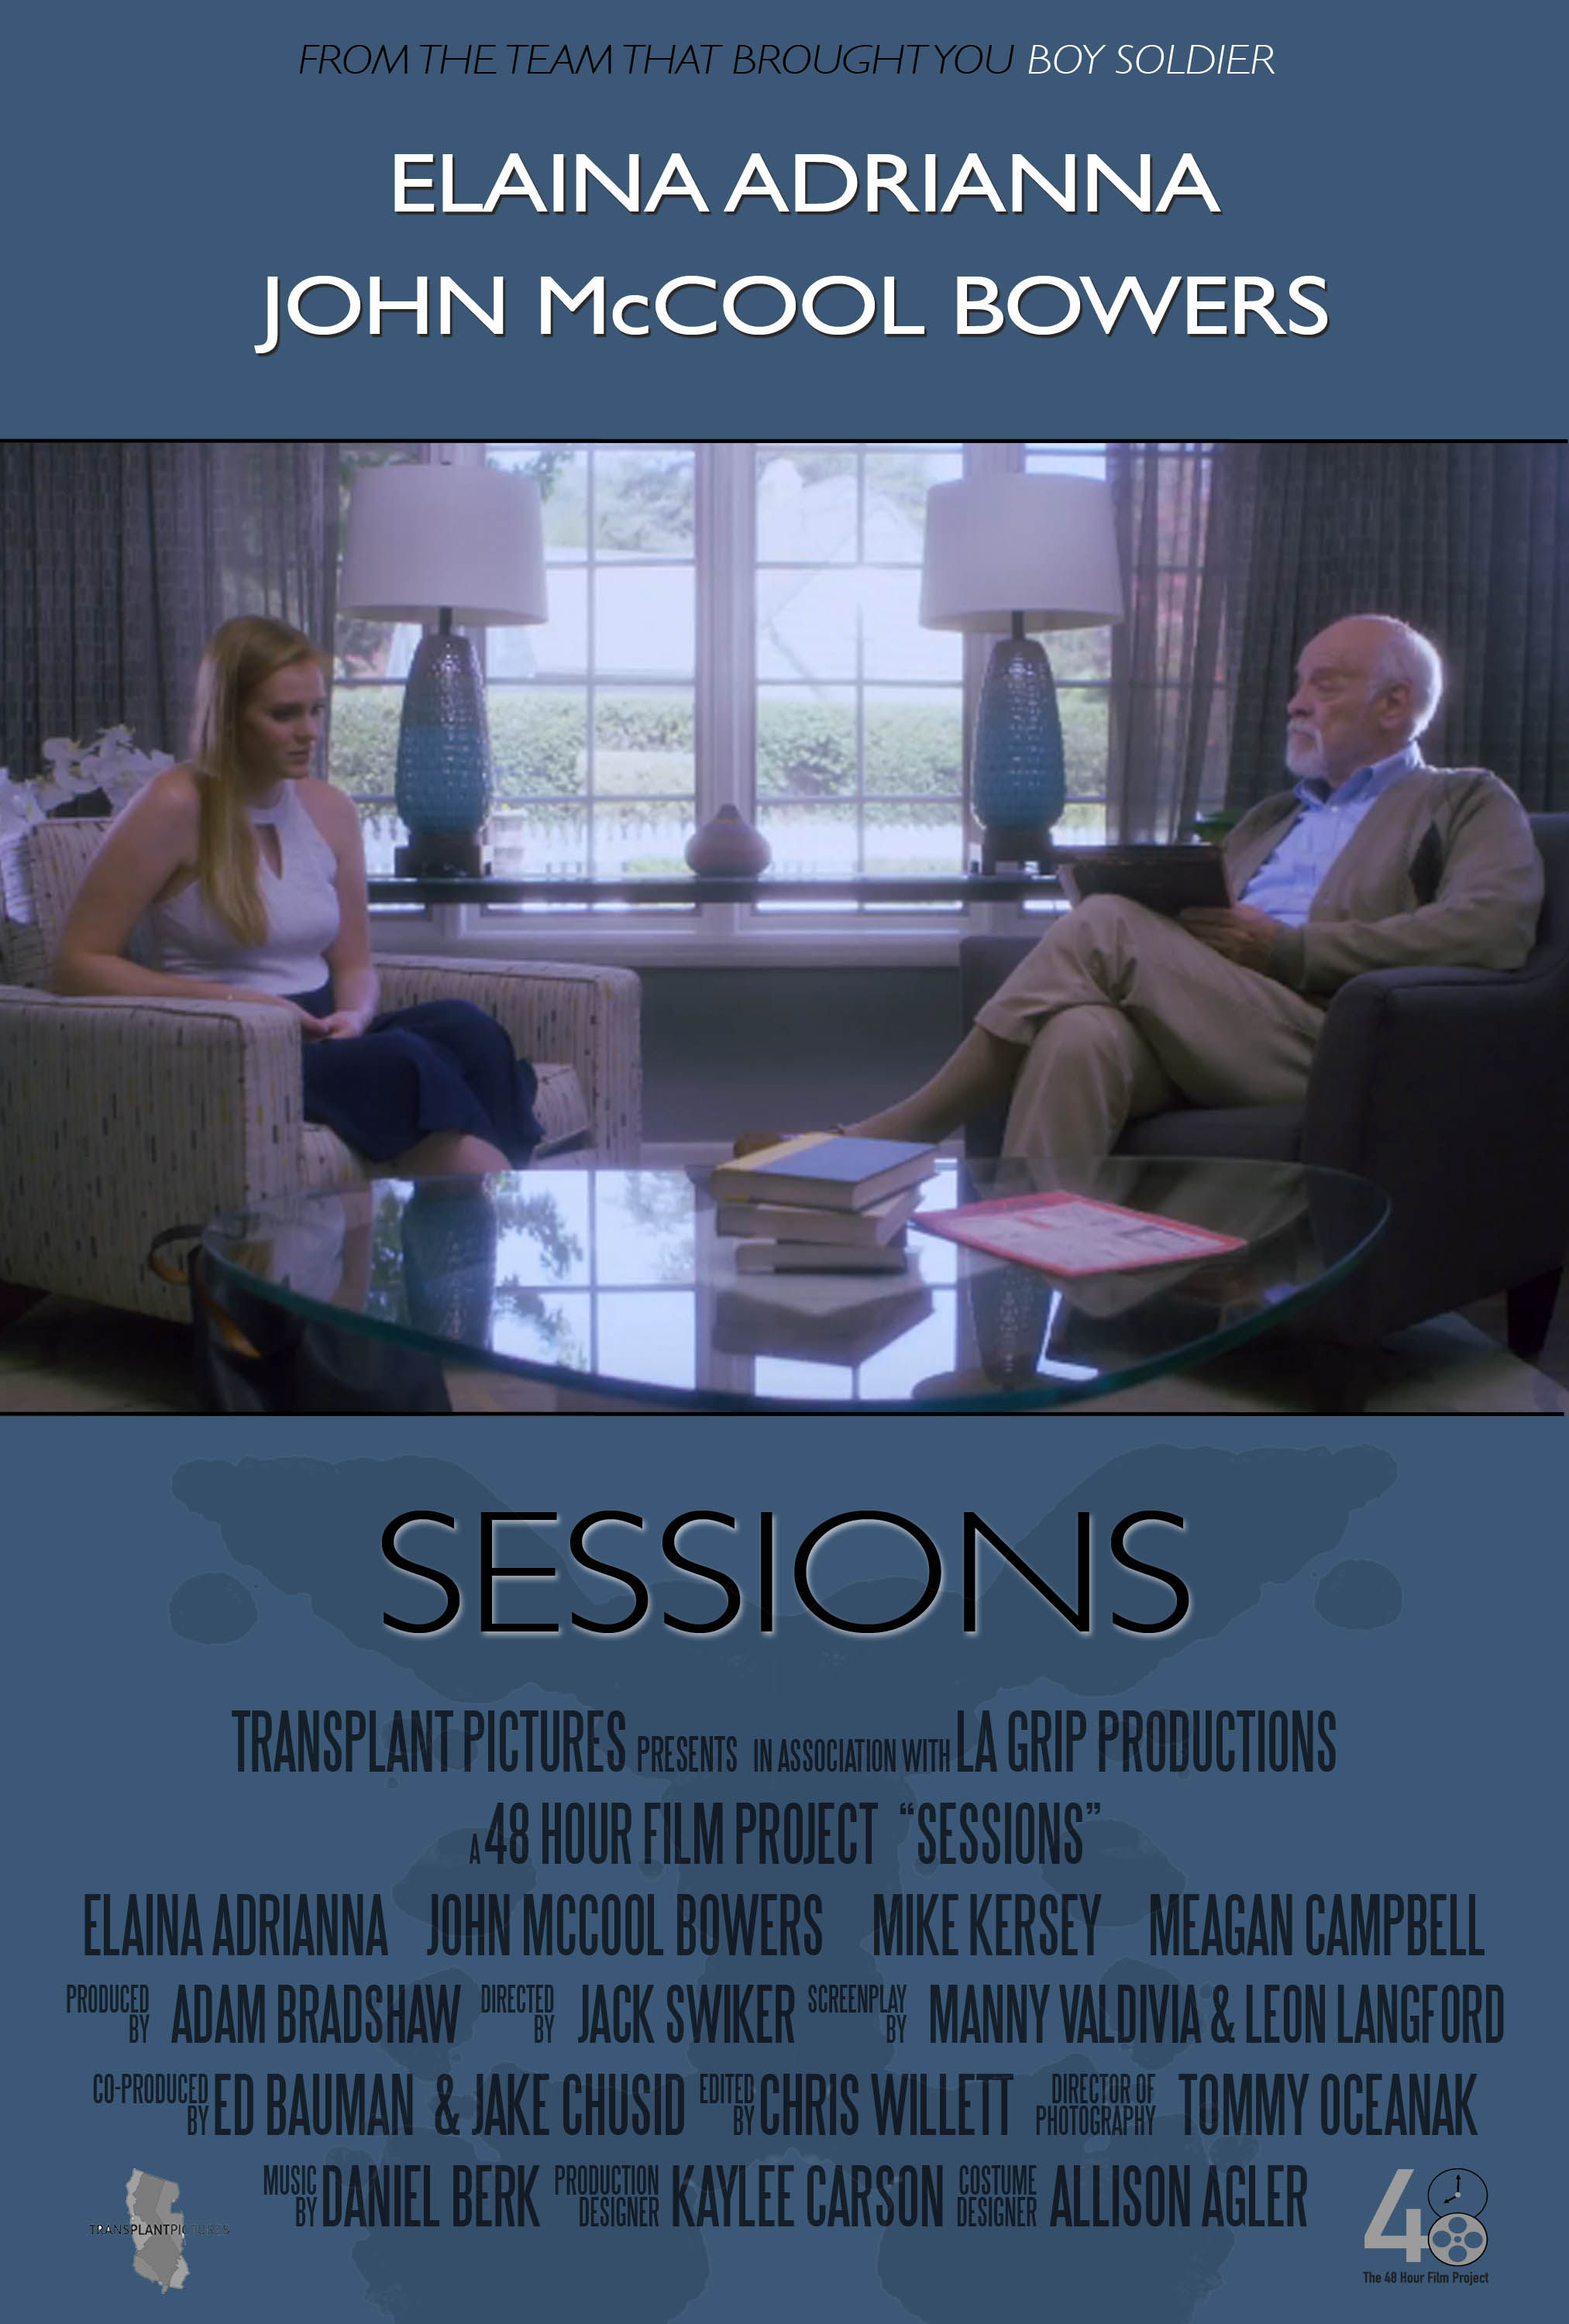 SessionsPoster.jpg